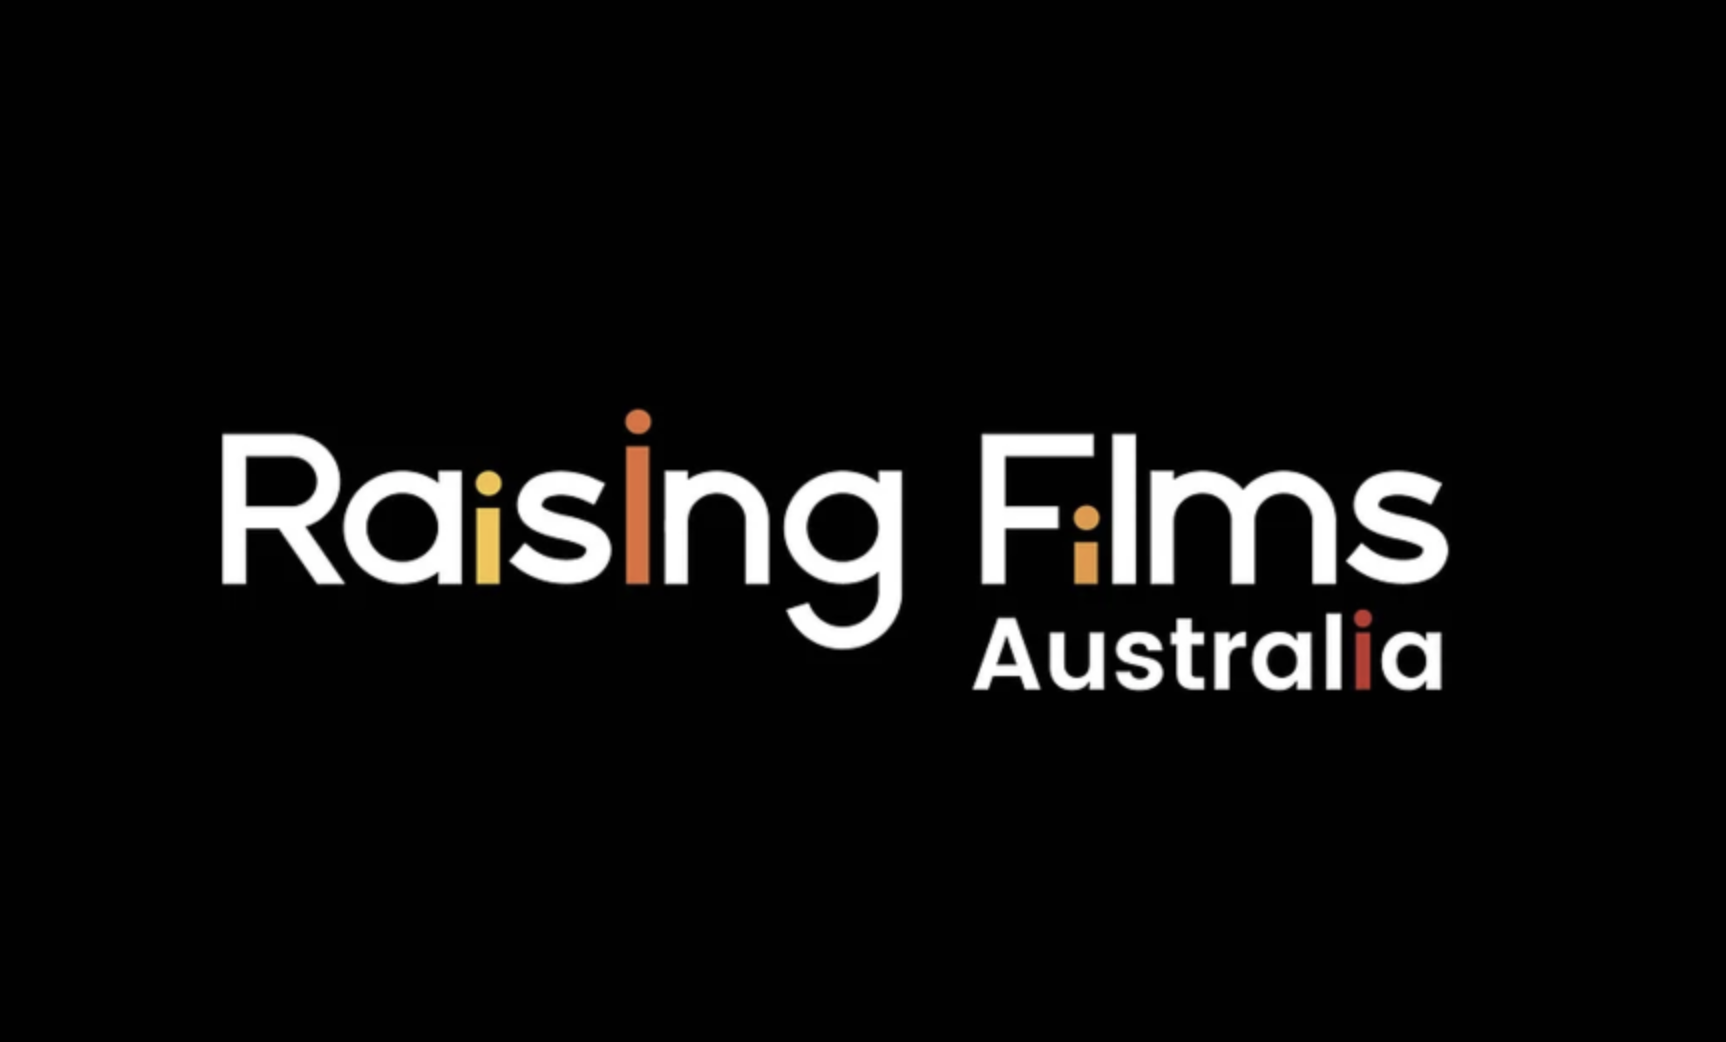 UK screen industry strategy Raising Films launches in Australia - 7 February 2018